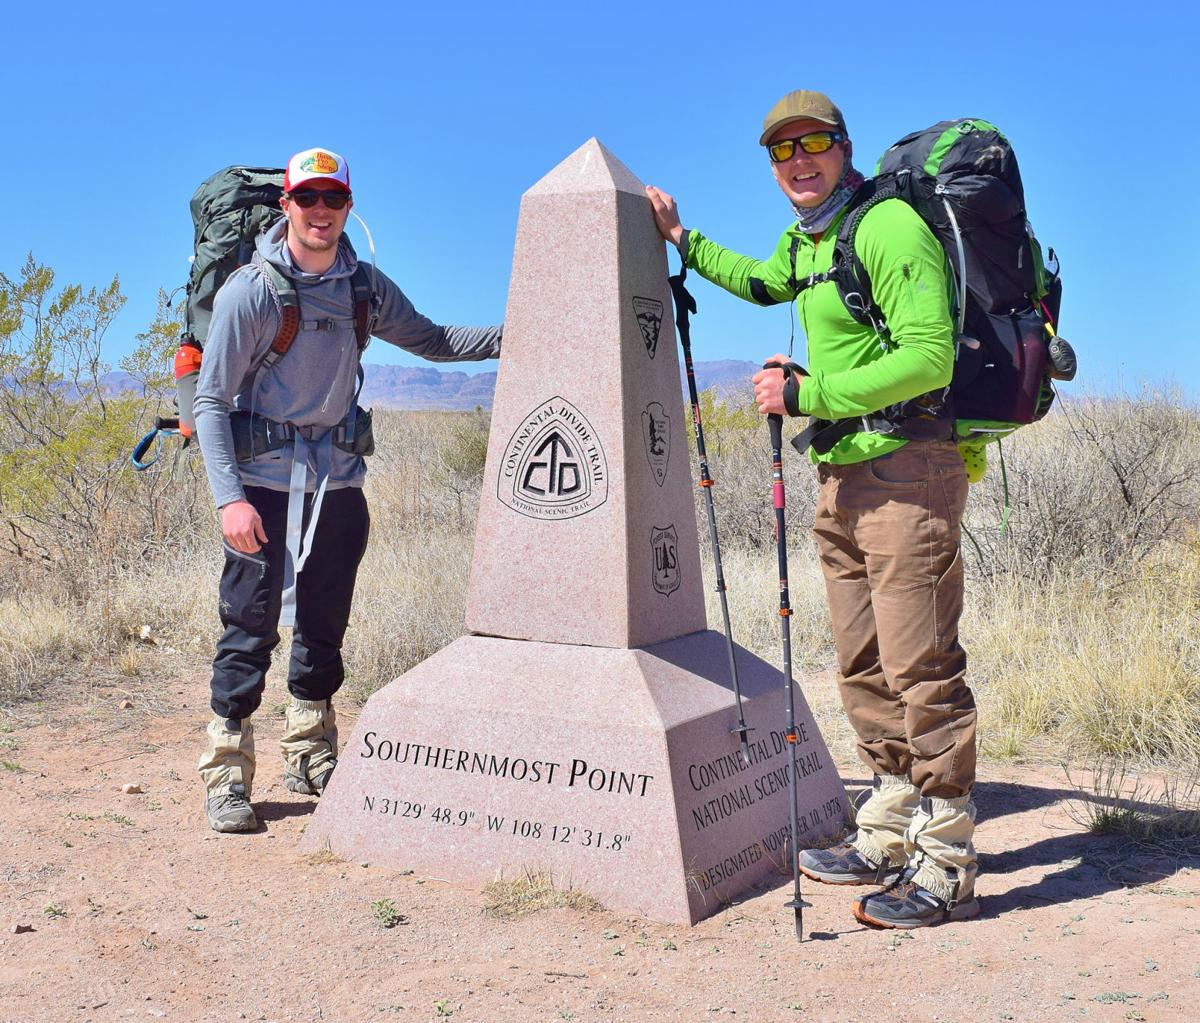 Hiking the divide: Bitterroot men lead the way on Continental Divide Trail